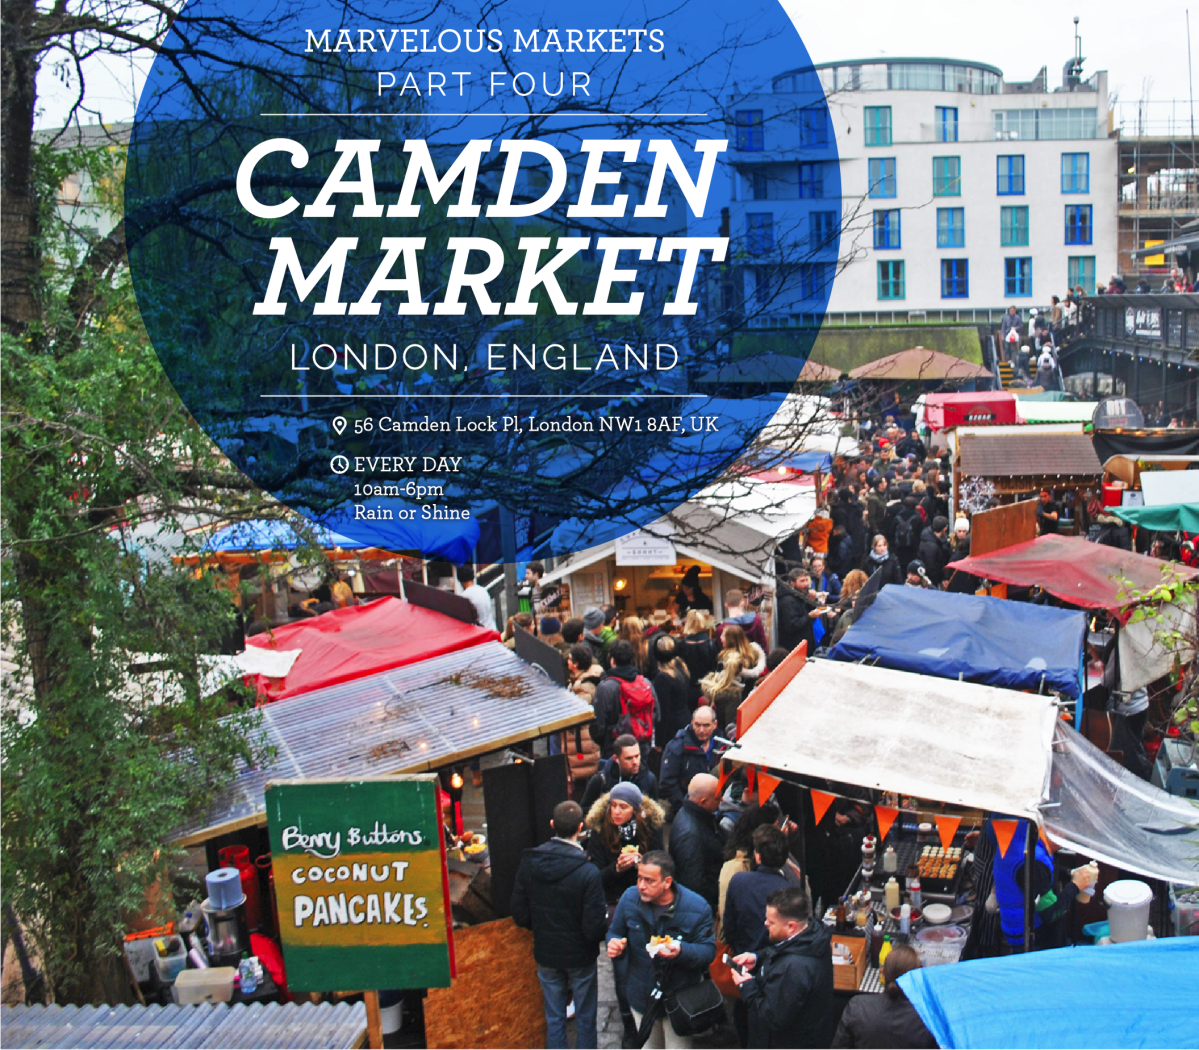 Marvelous Markets, pt. 4: Camden Market – London